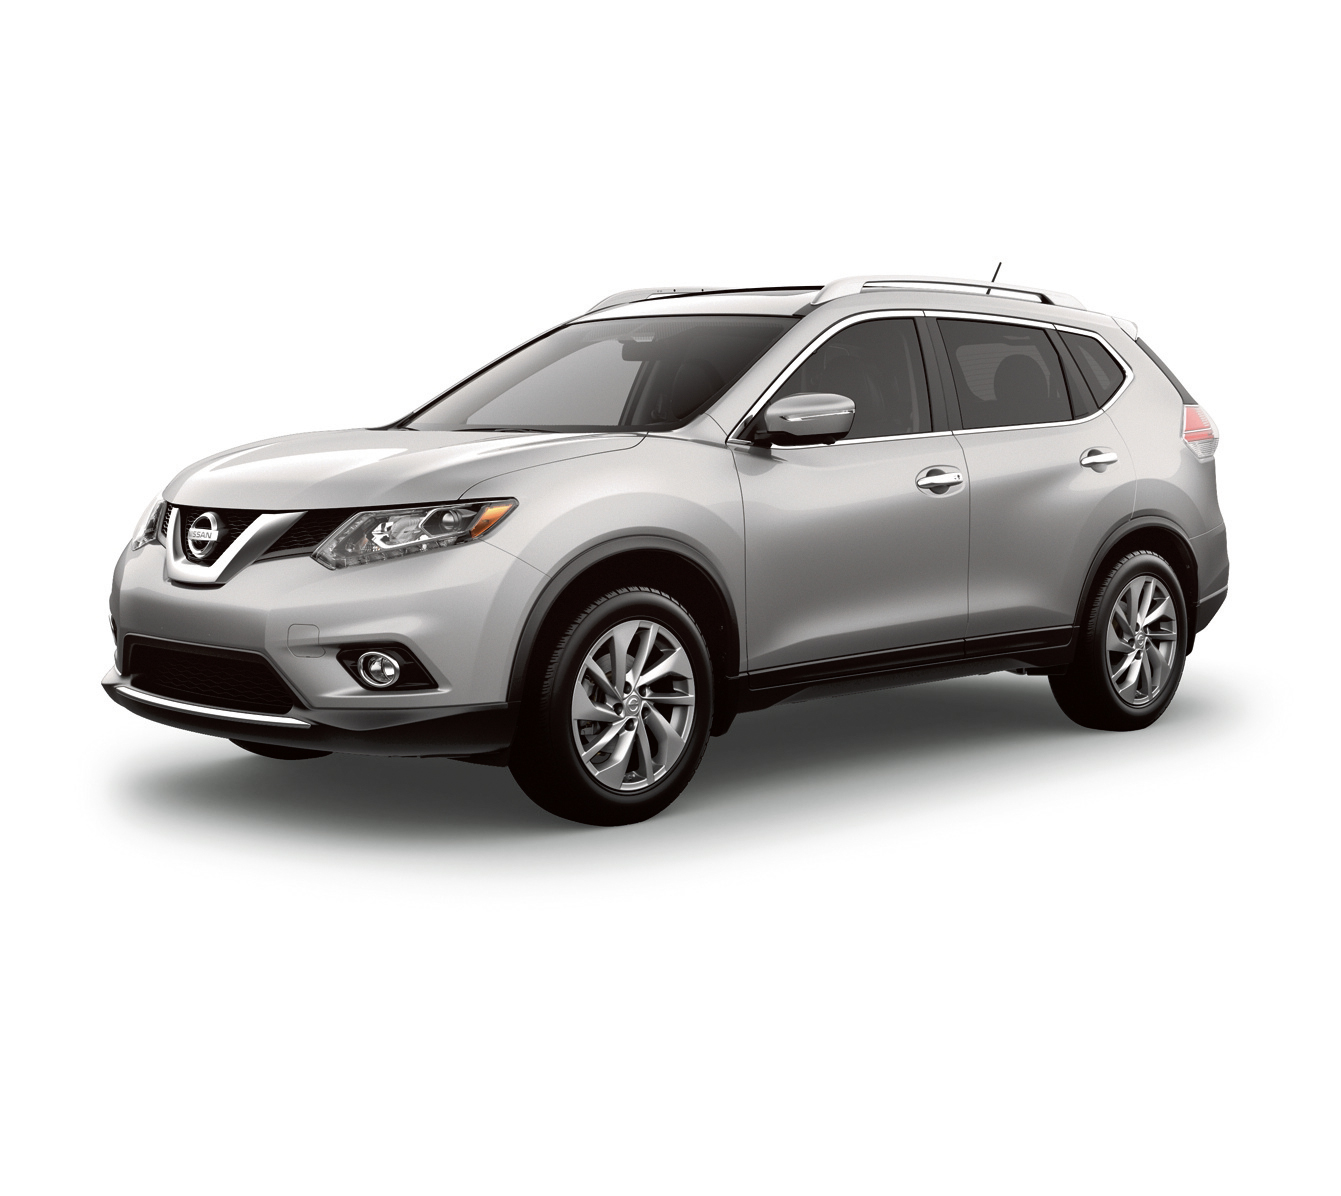 2015 nissan rogue recalled for accidentally shifting out of park